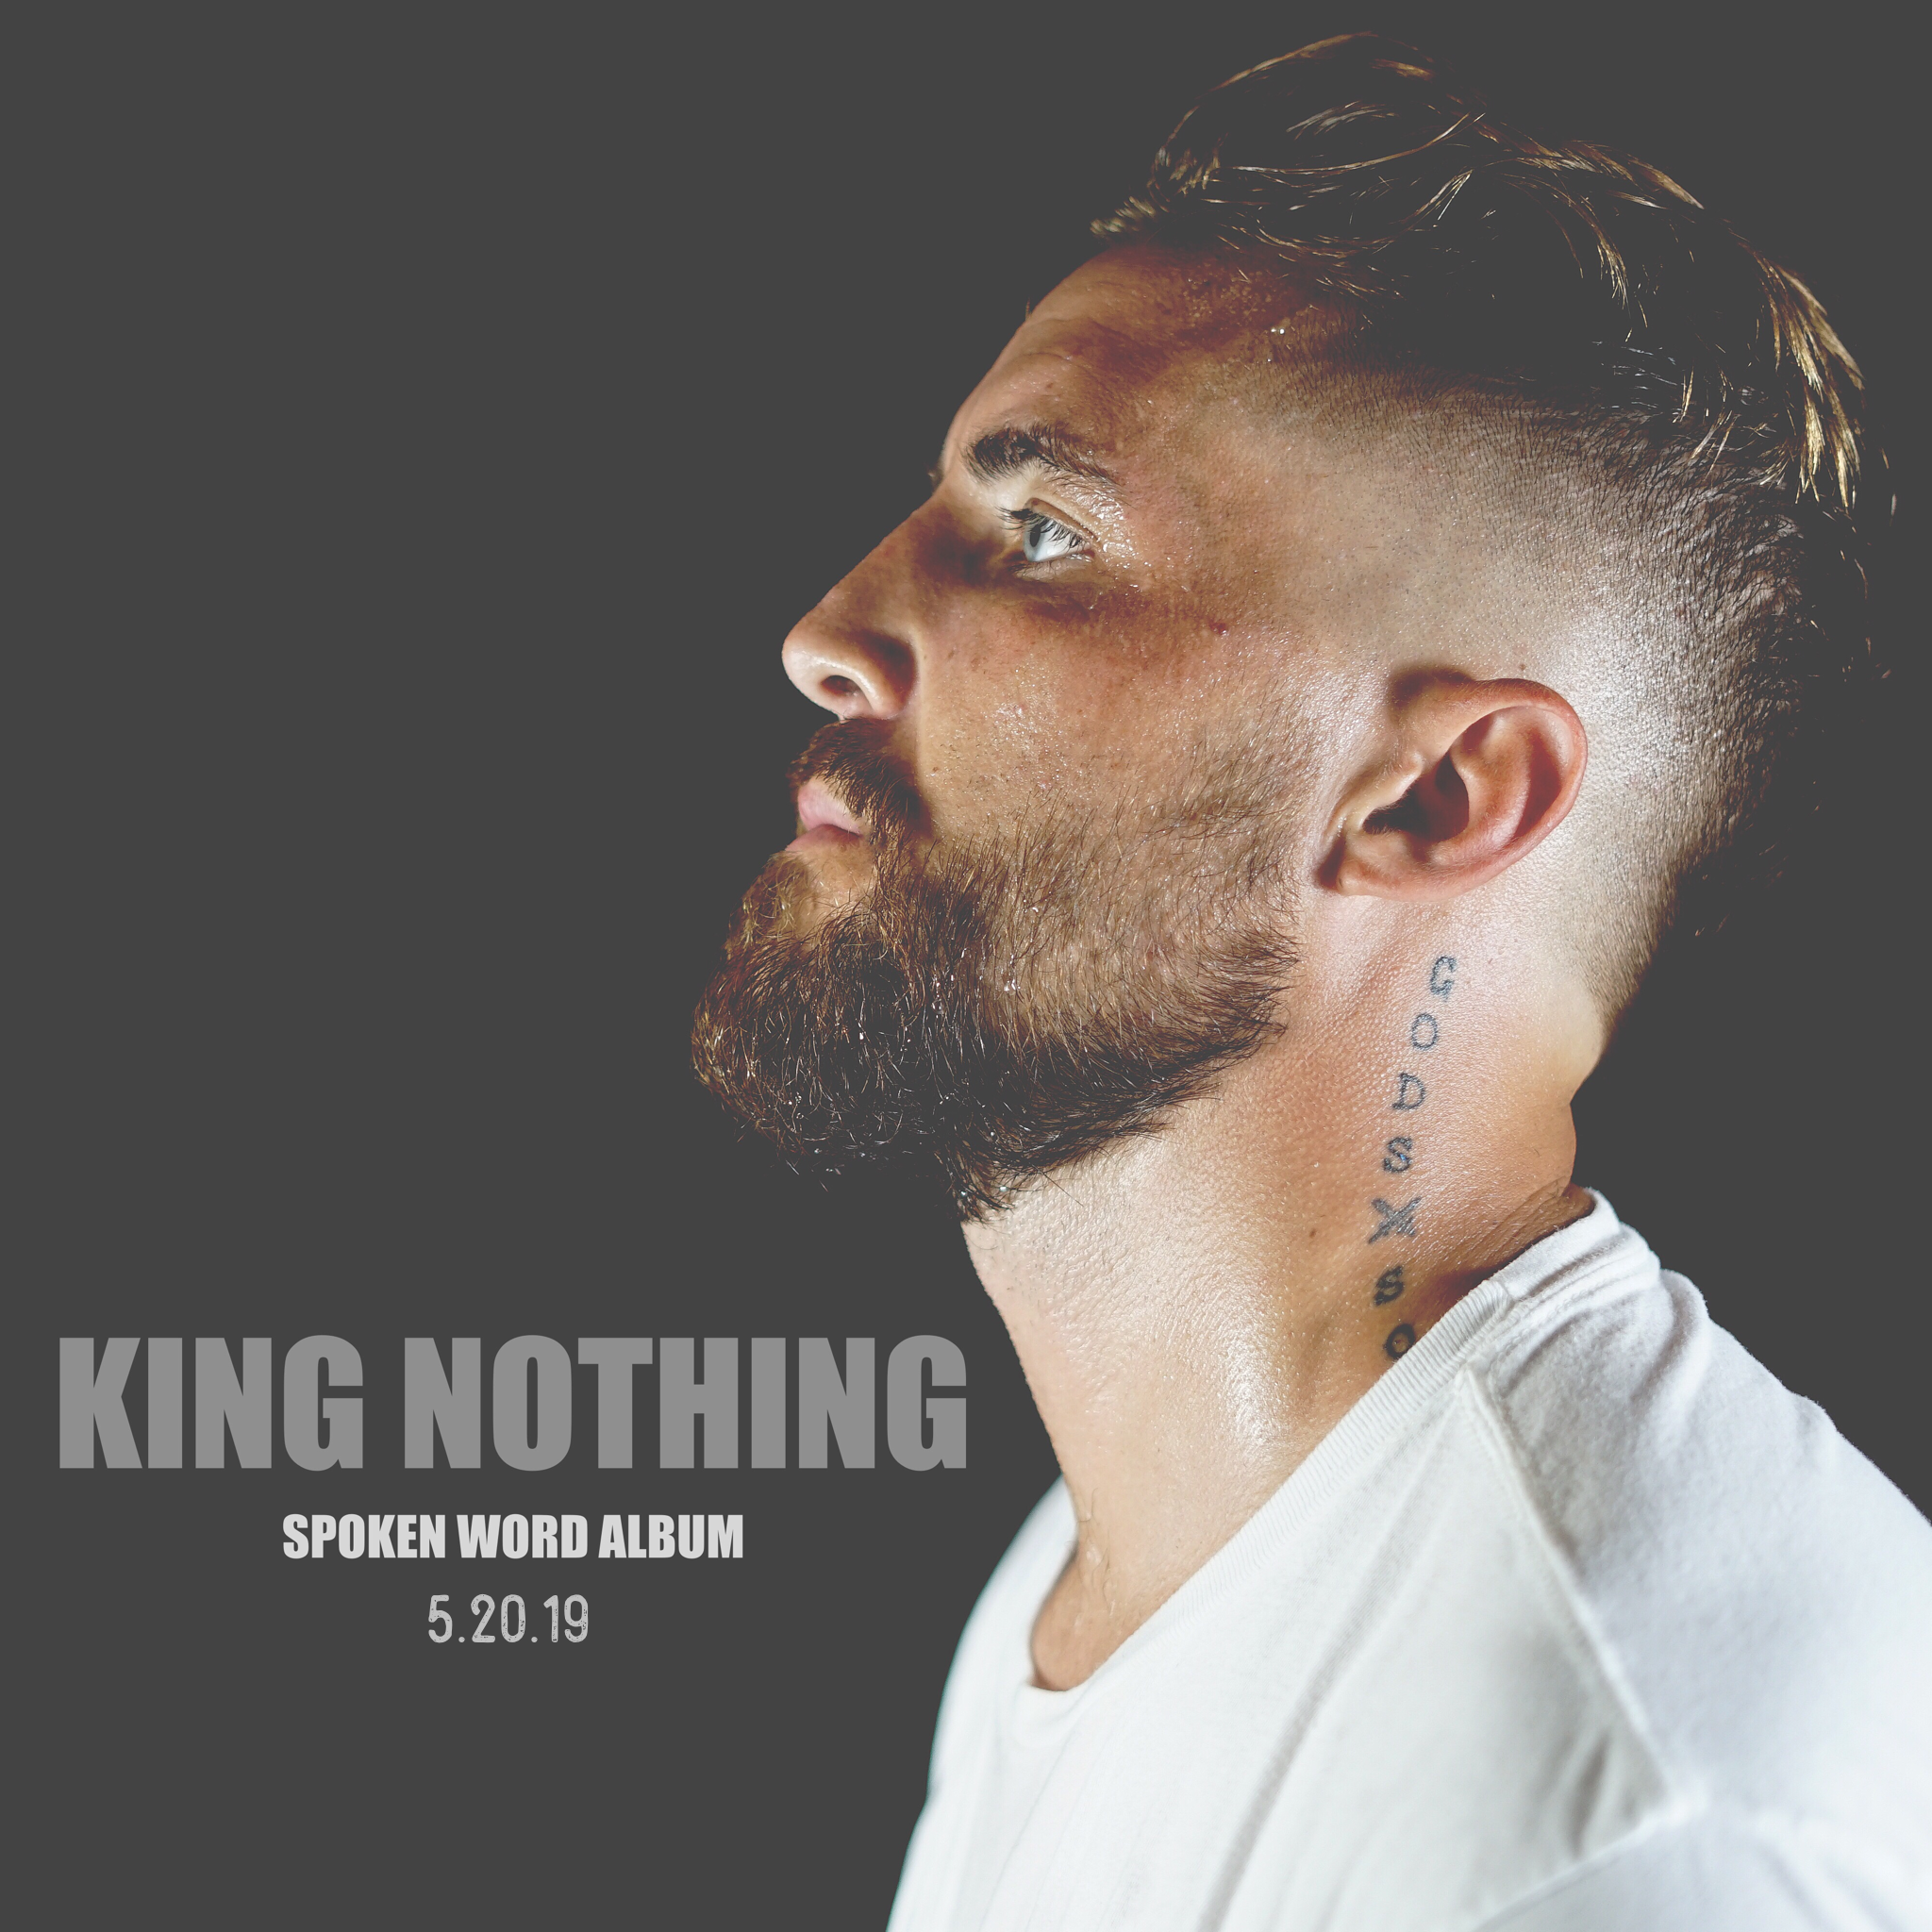 King Nothing | New Album - Friends and Family, I am excited to announce the release of my new spoken word album, King Nothing. As many of you know, this past year has been wild. I've learned more things about myself than any other time in my life. Me and my family are stronger than ever before. This album gives you not just a glimpse into my life - but I blow the door wide open on everything. Here's to transparency. Here's to vulnerability. Here goes nothing - King Nothing.